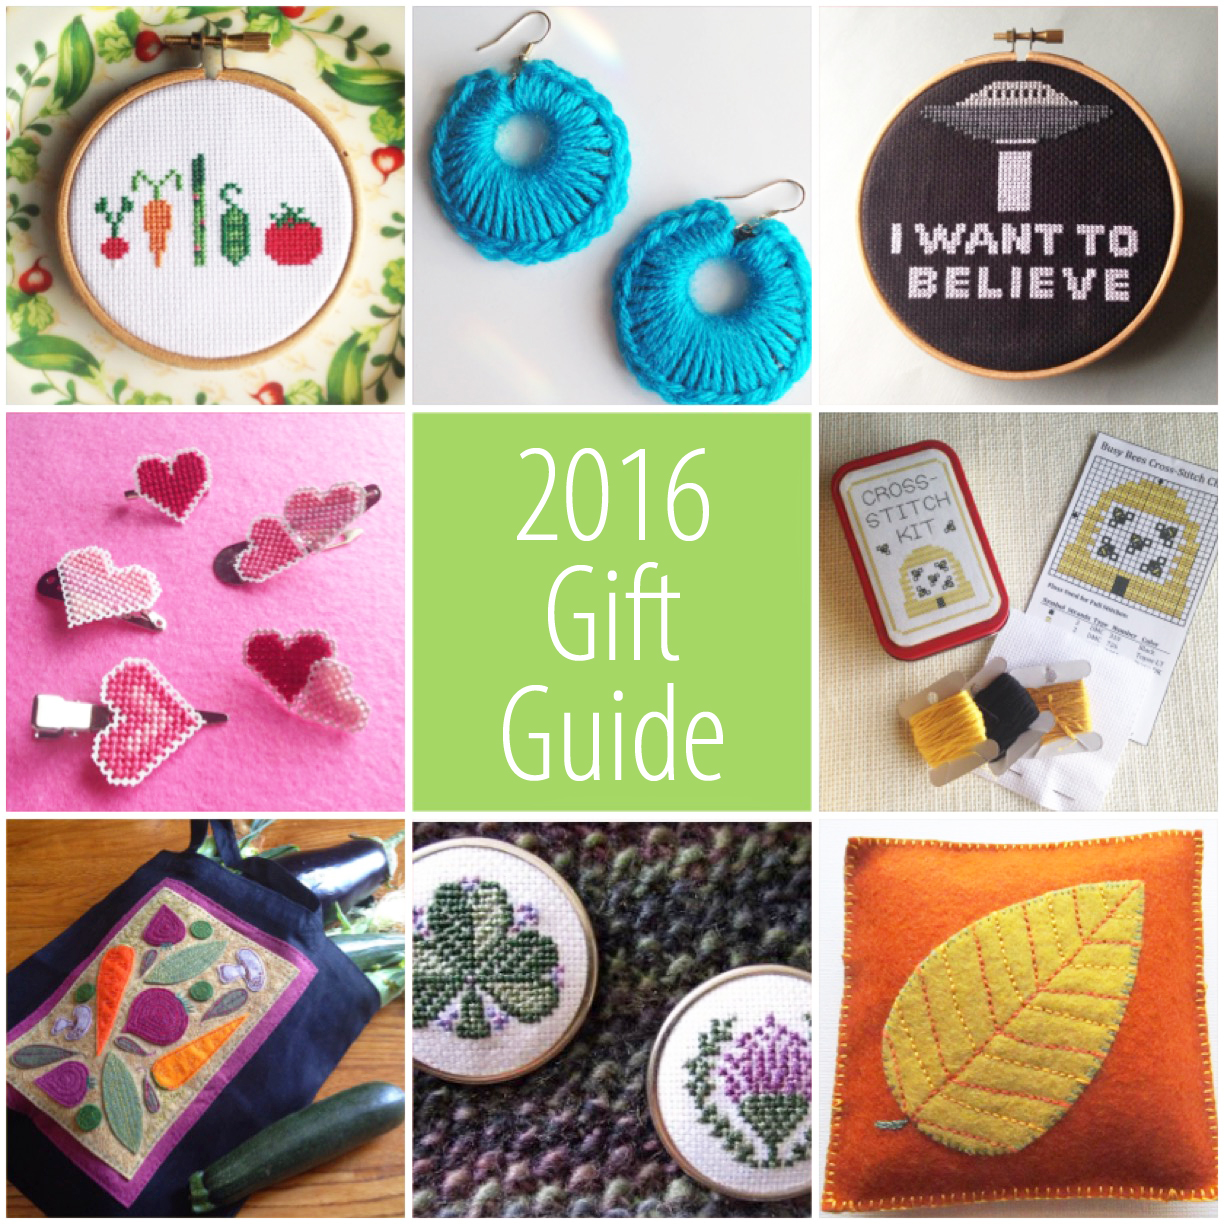 Kbb Crafts Stitches 2016 Holiday Gift Guide